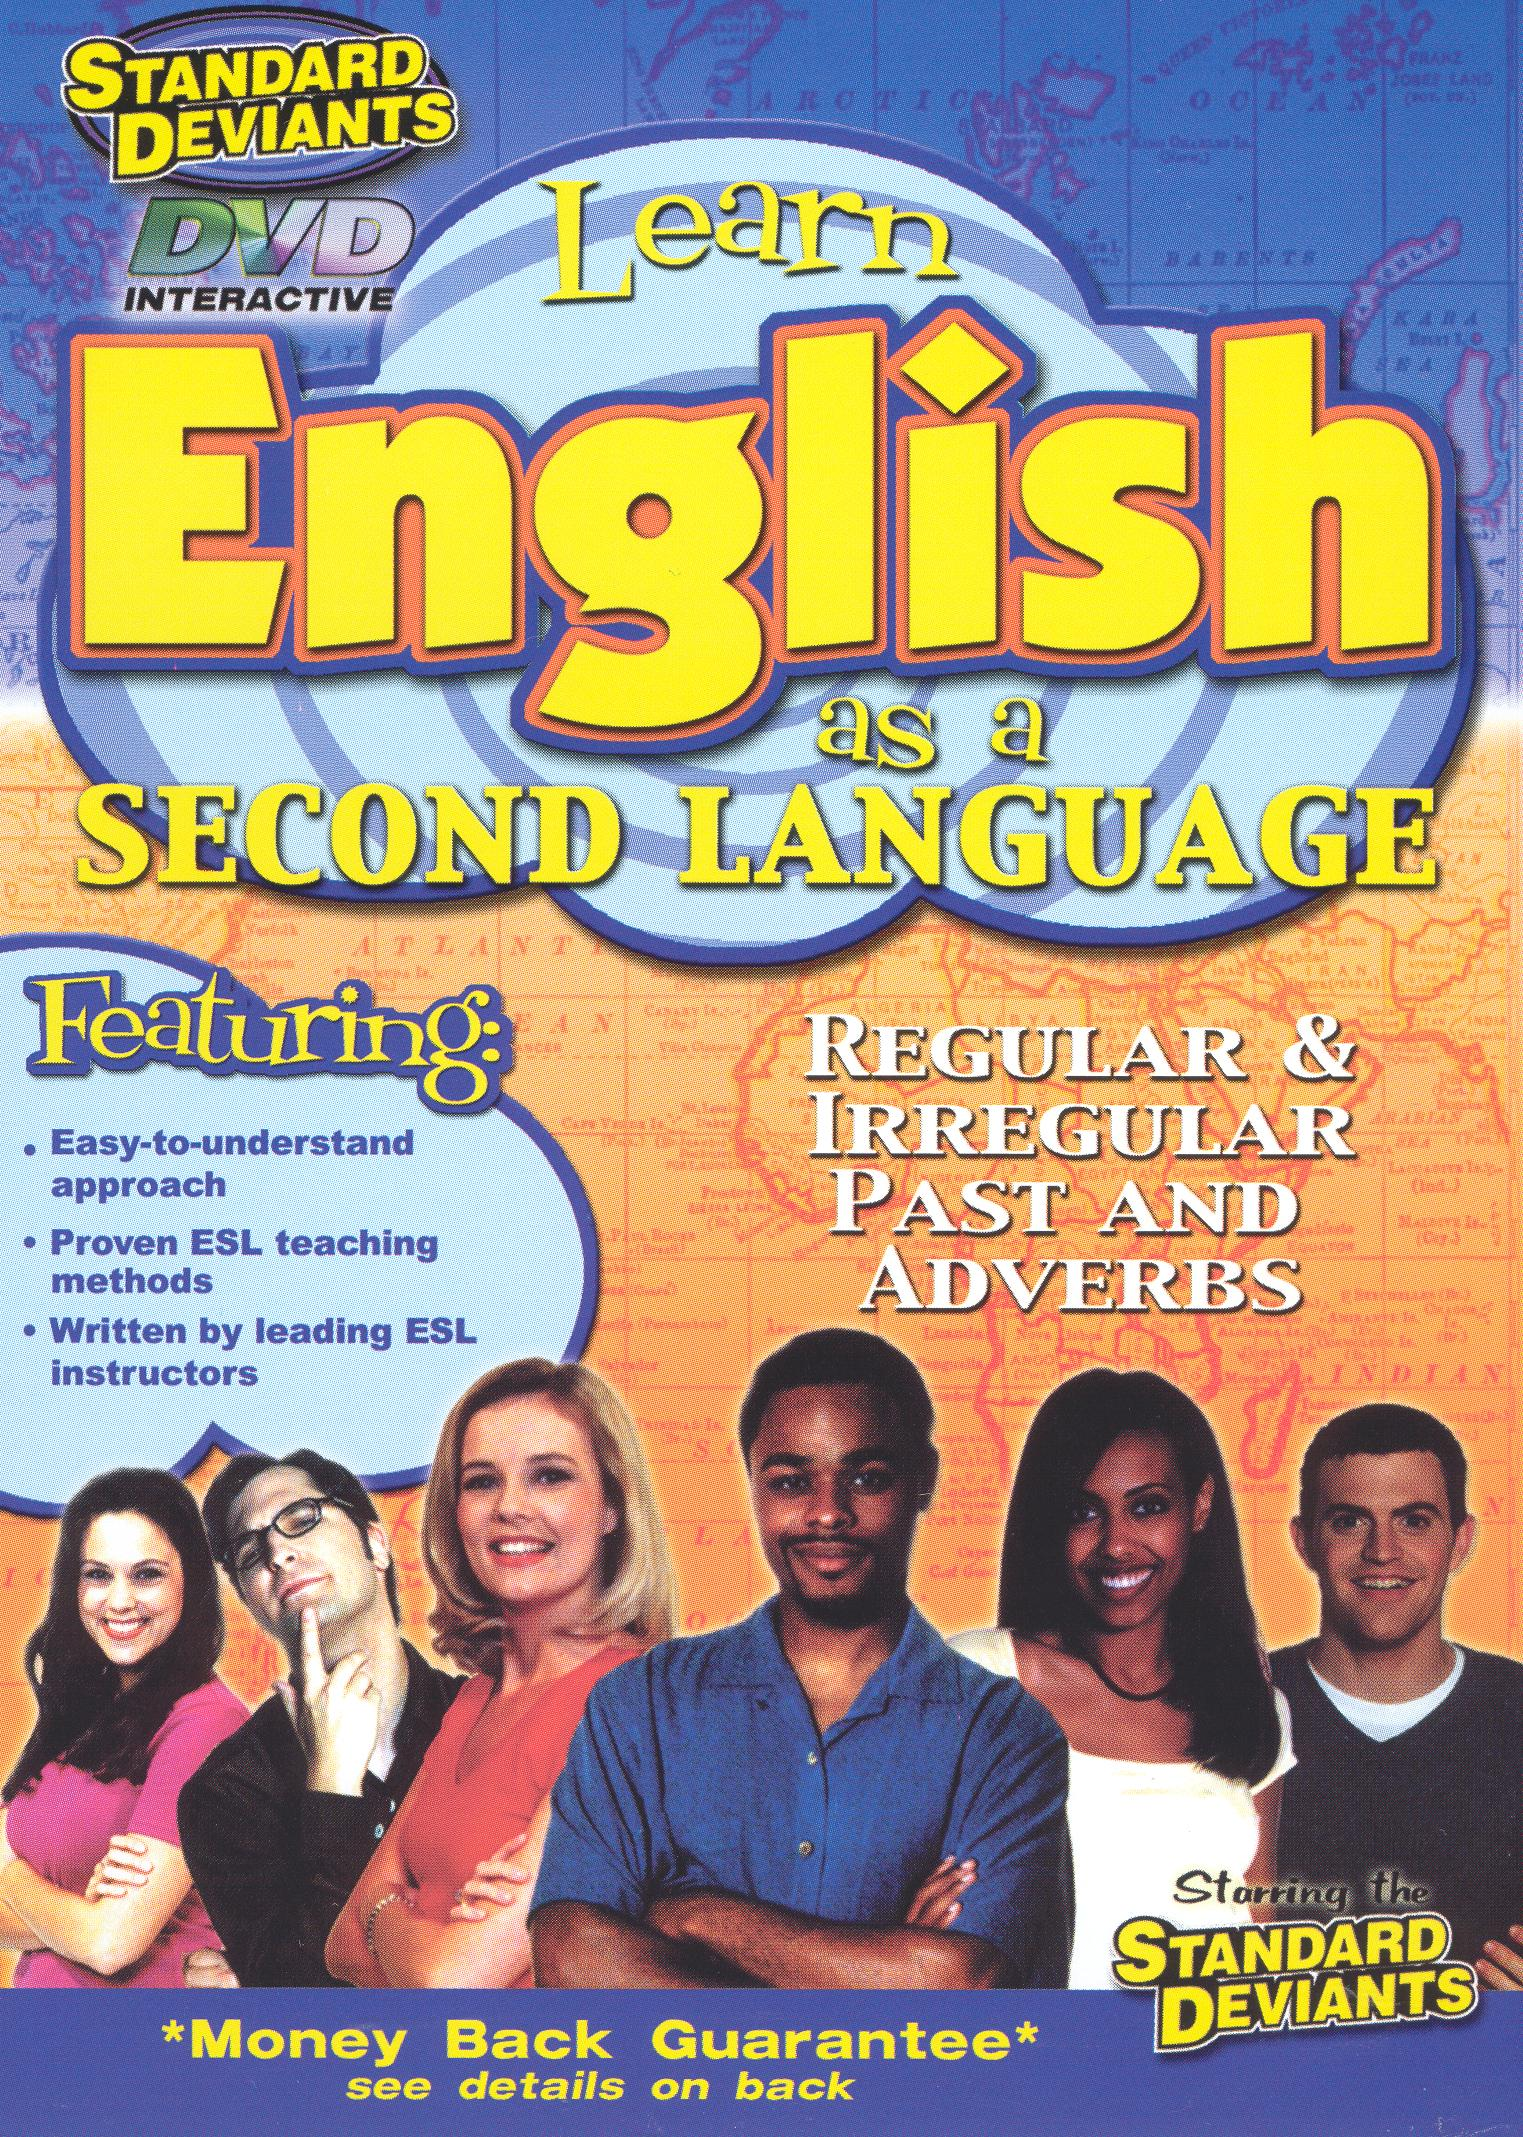 The Standard Deviants: ESL Program, Vol. 4 - Regular and Irregular Past and Adverbs